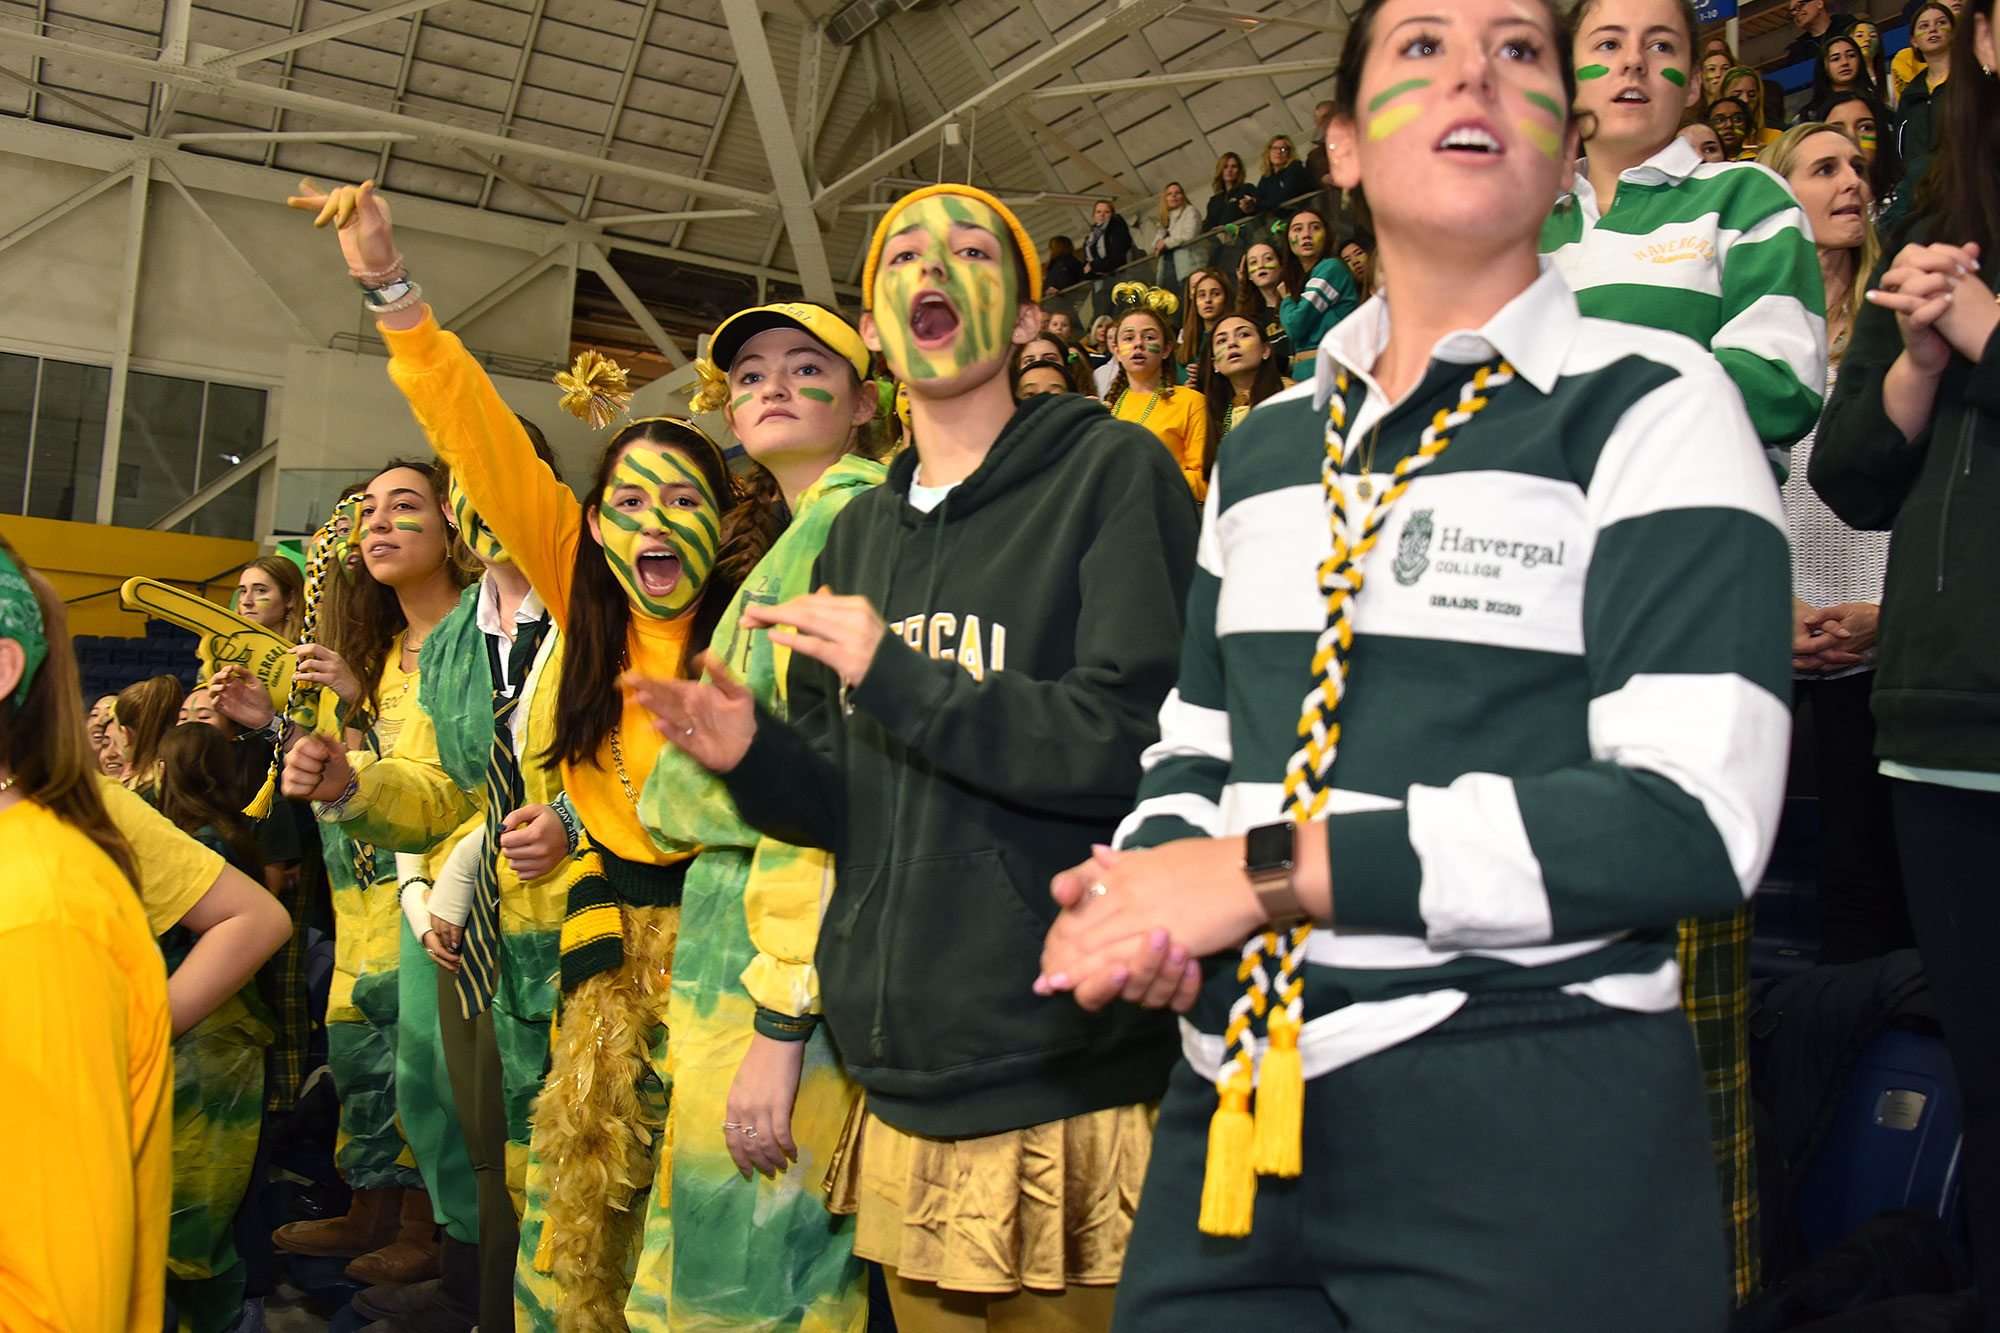 Students in green and gold sprit attire cheer at a sporting match.